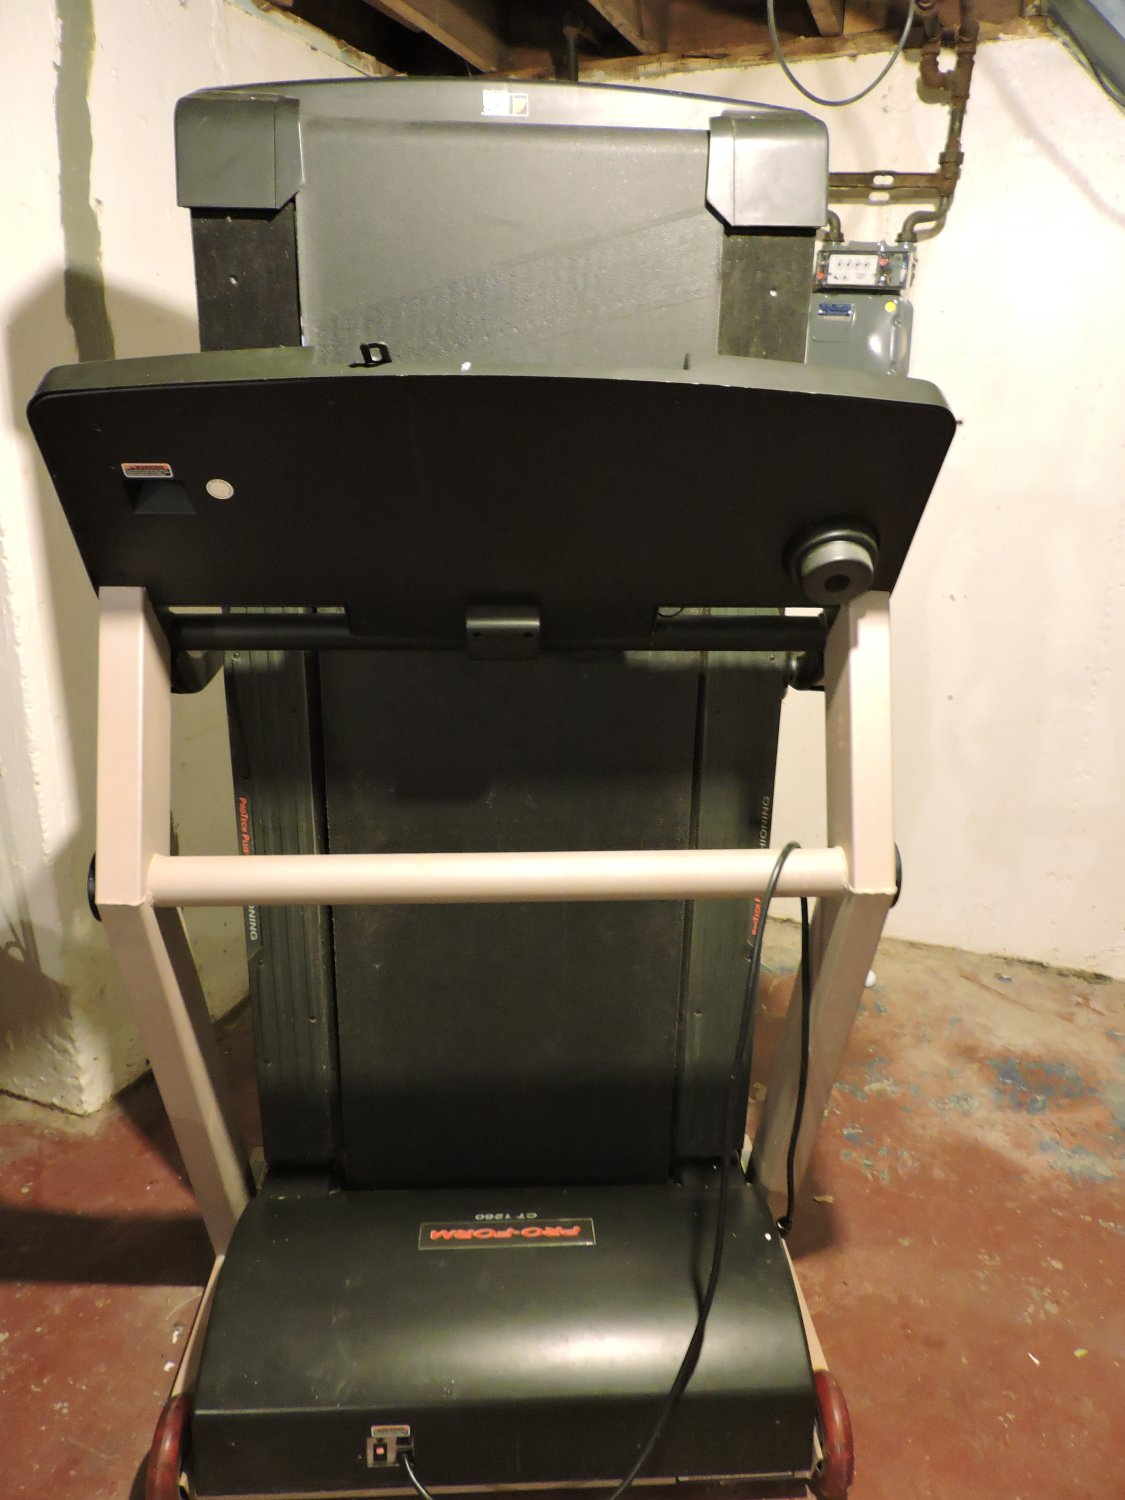 Treadmill PRO-FORM CT1260 Model No. PFTL14920   LOCAL PICK UP ONLY